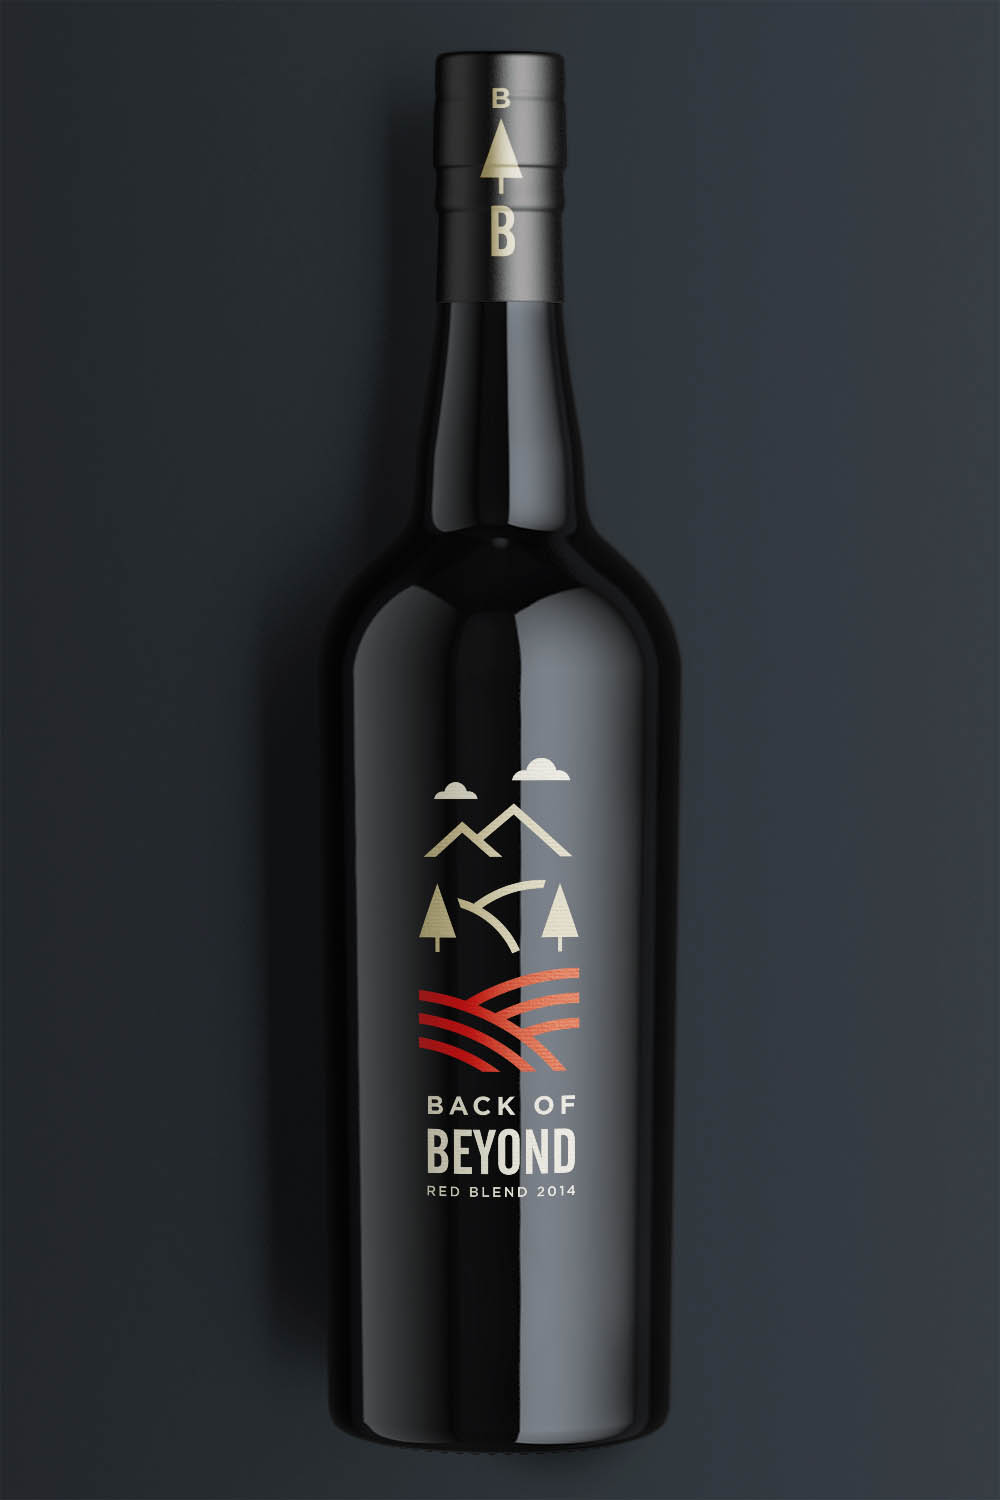 Back of Beyond wine bottle label design